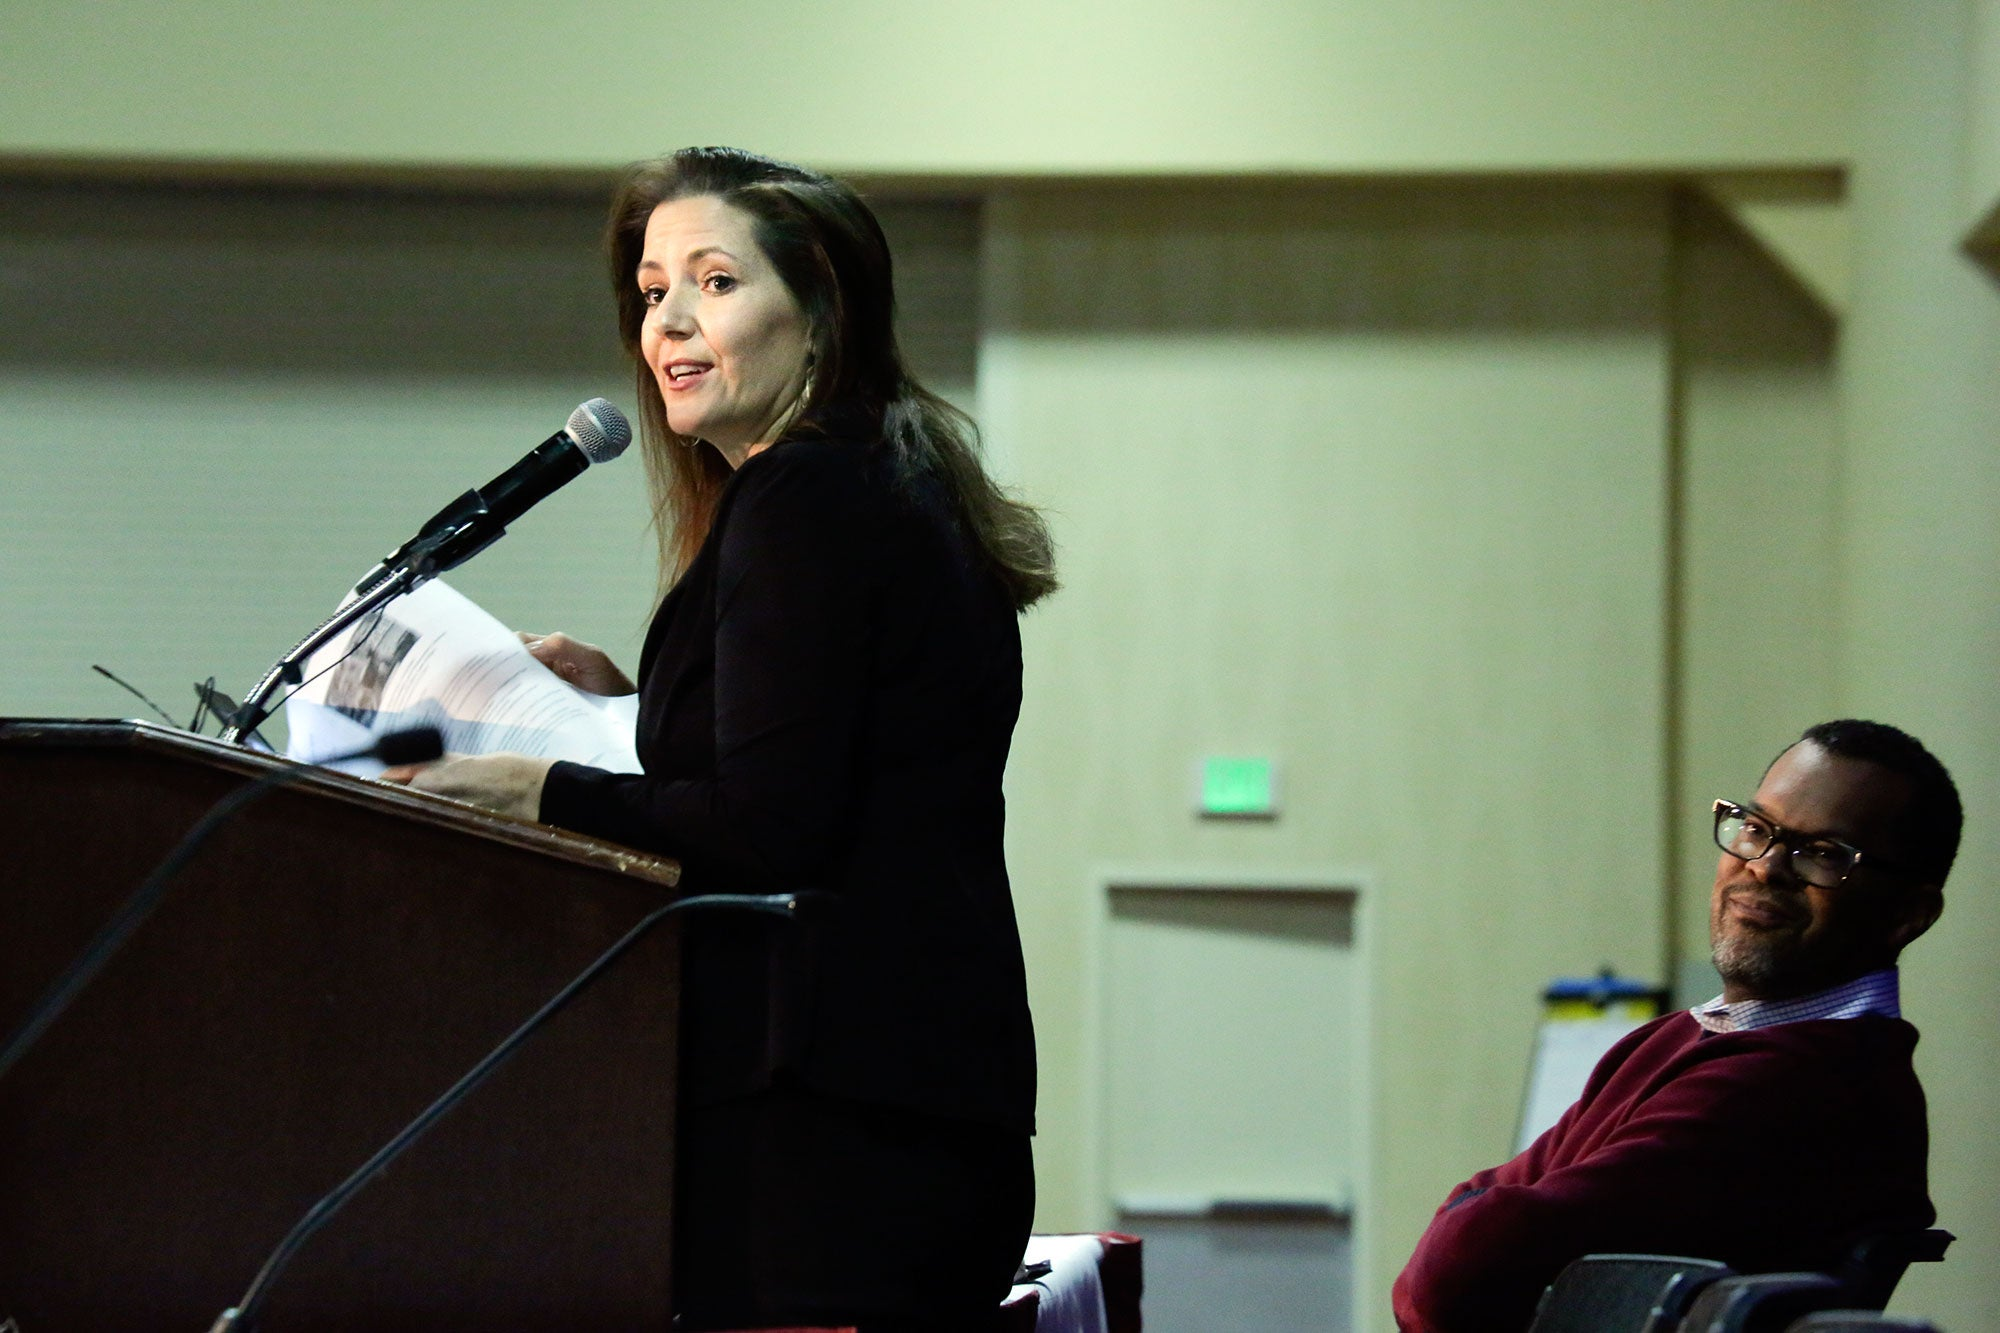 MTC Commissioner and Oakland Mayor Libby Schaaf welcomed the forum's attendees and spoke about the housing challenges that Oakland faces.